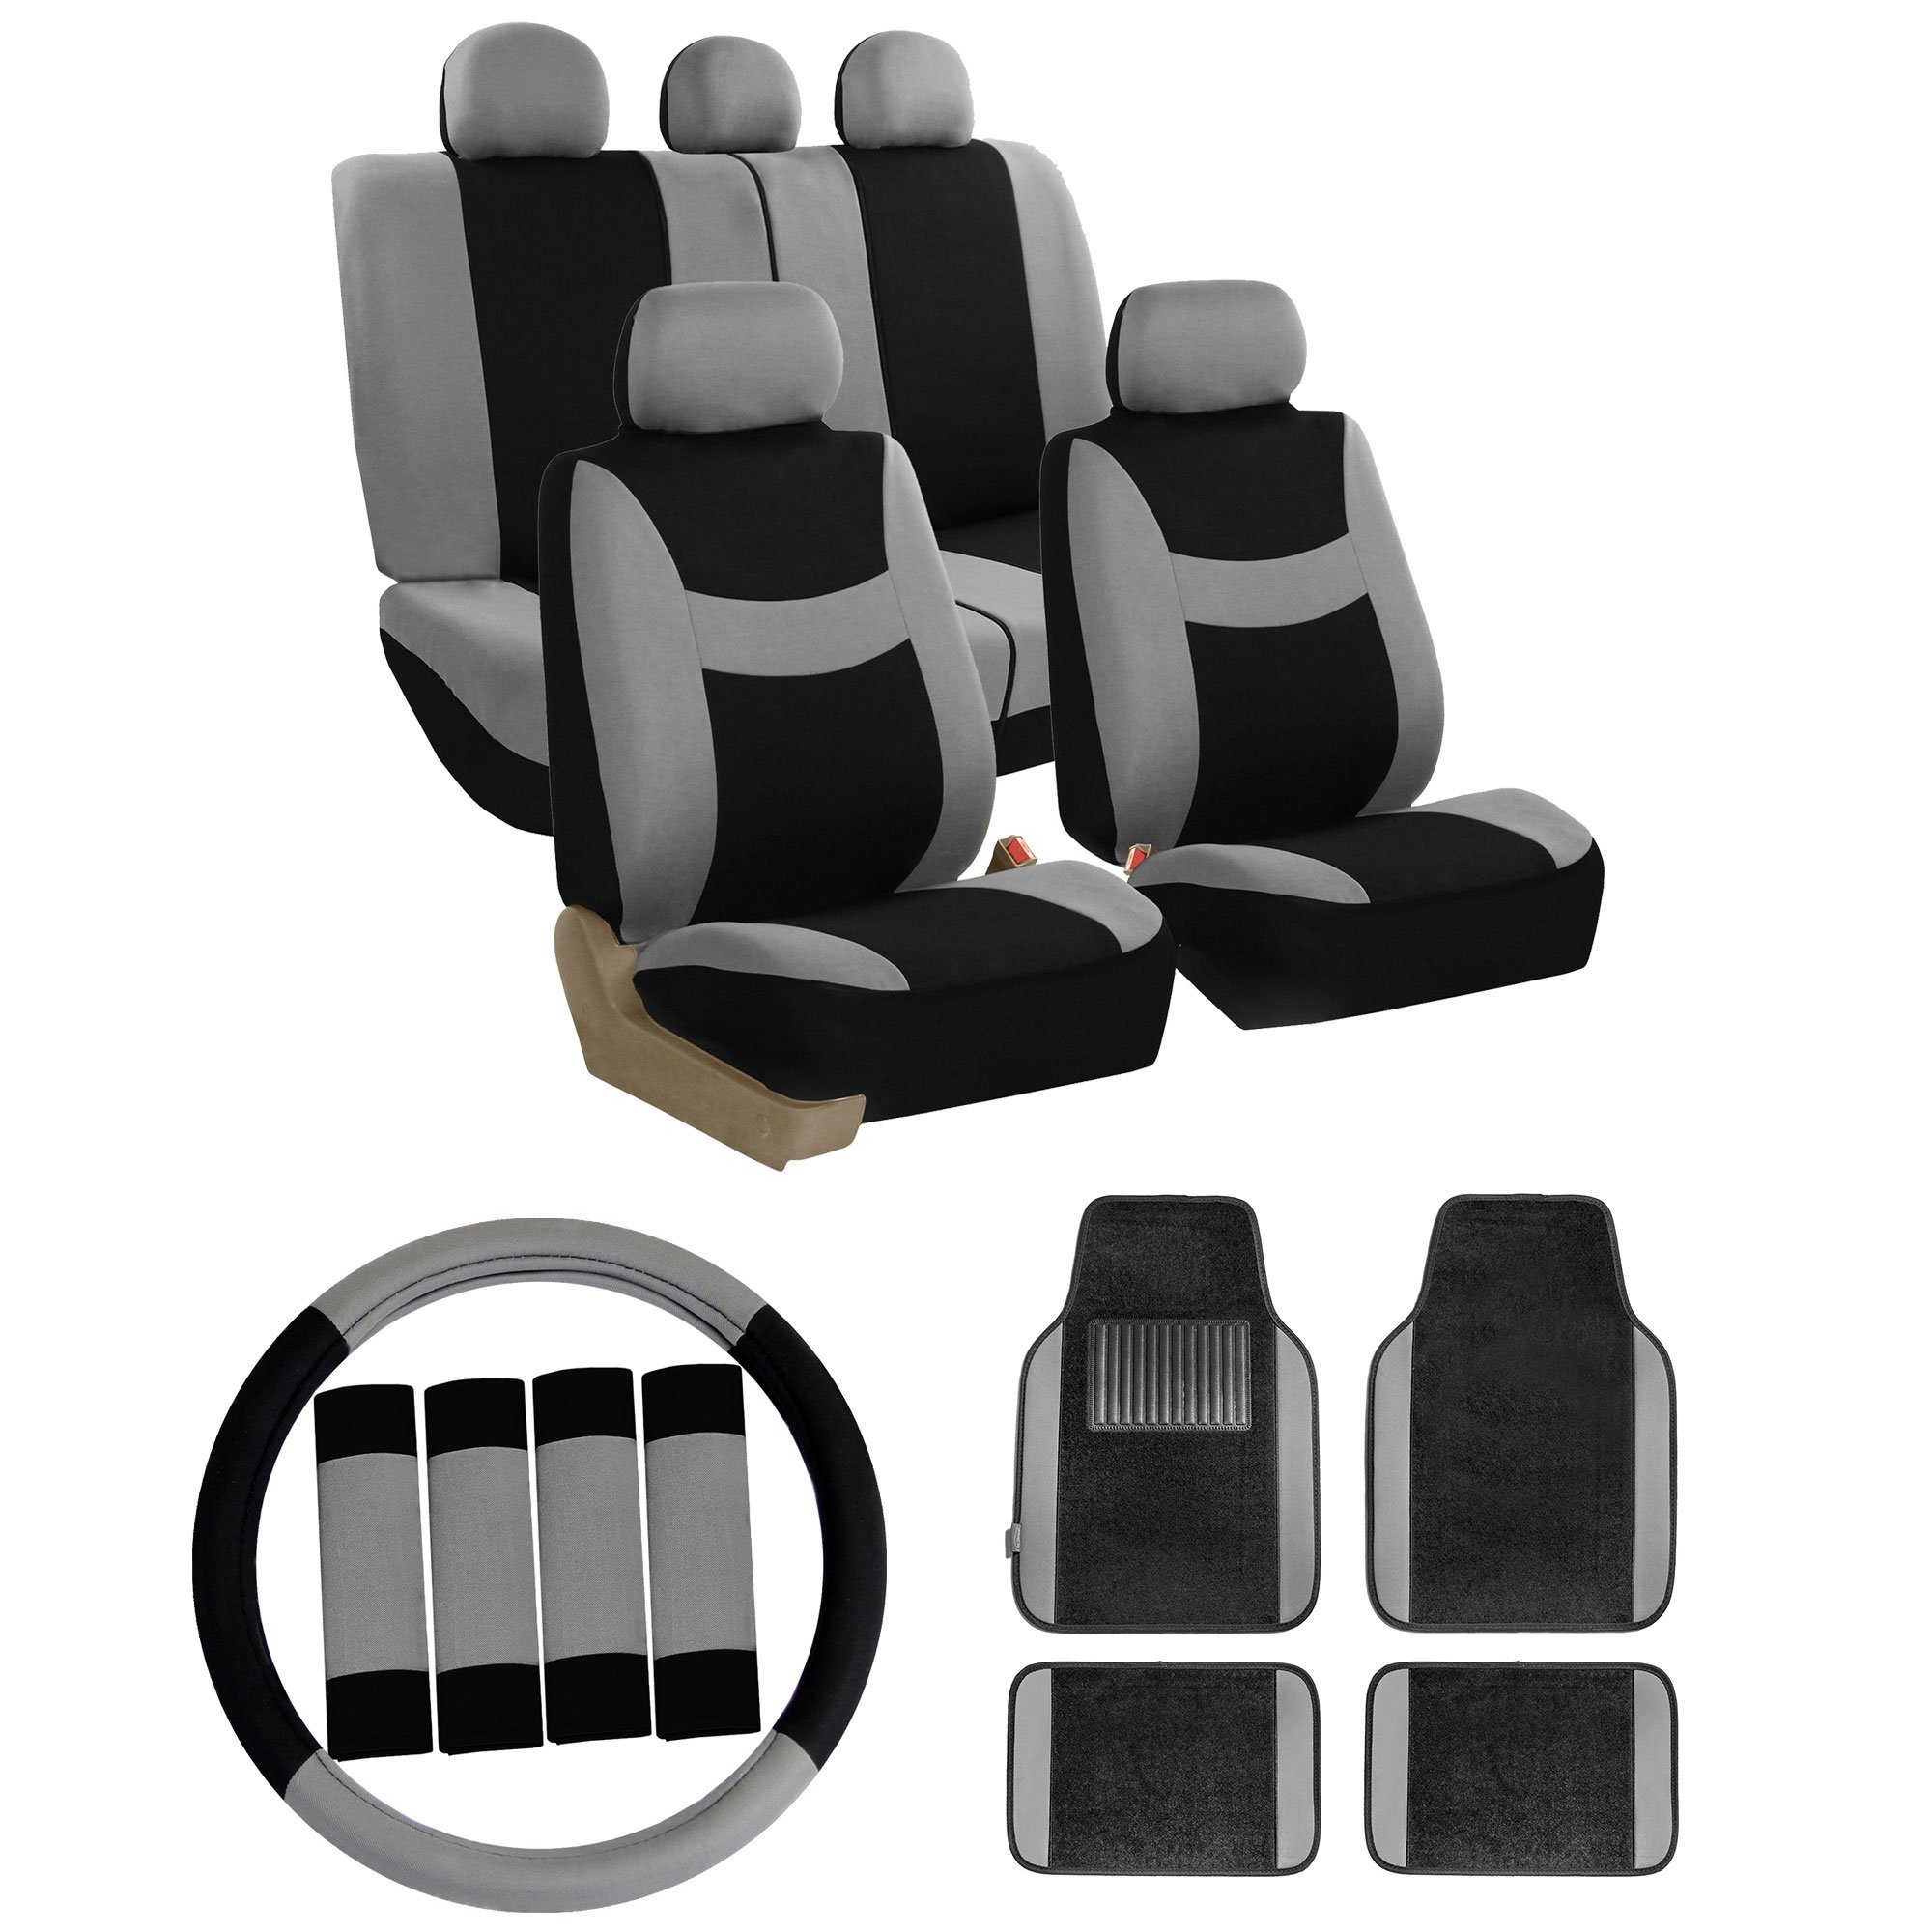 FH GROUP FH-FB030115 Light & Breezy Cloth Seat Covers (Airbag & Split) W.FH2033 + F14407 Carpet Floor Mats Gray / Black- Fit Most Car, Truck, Suv, or Van